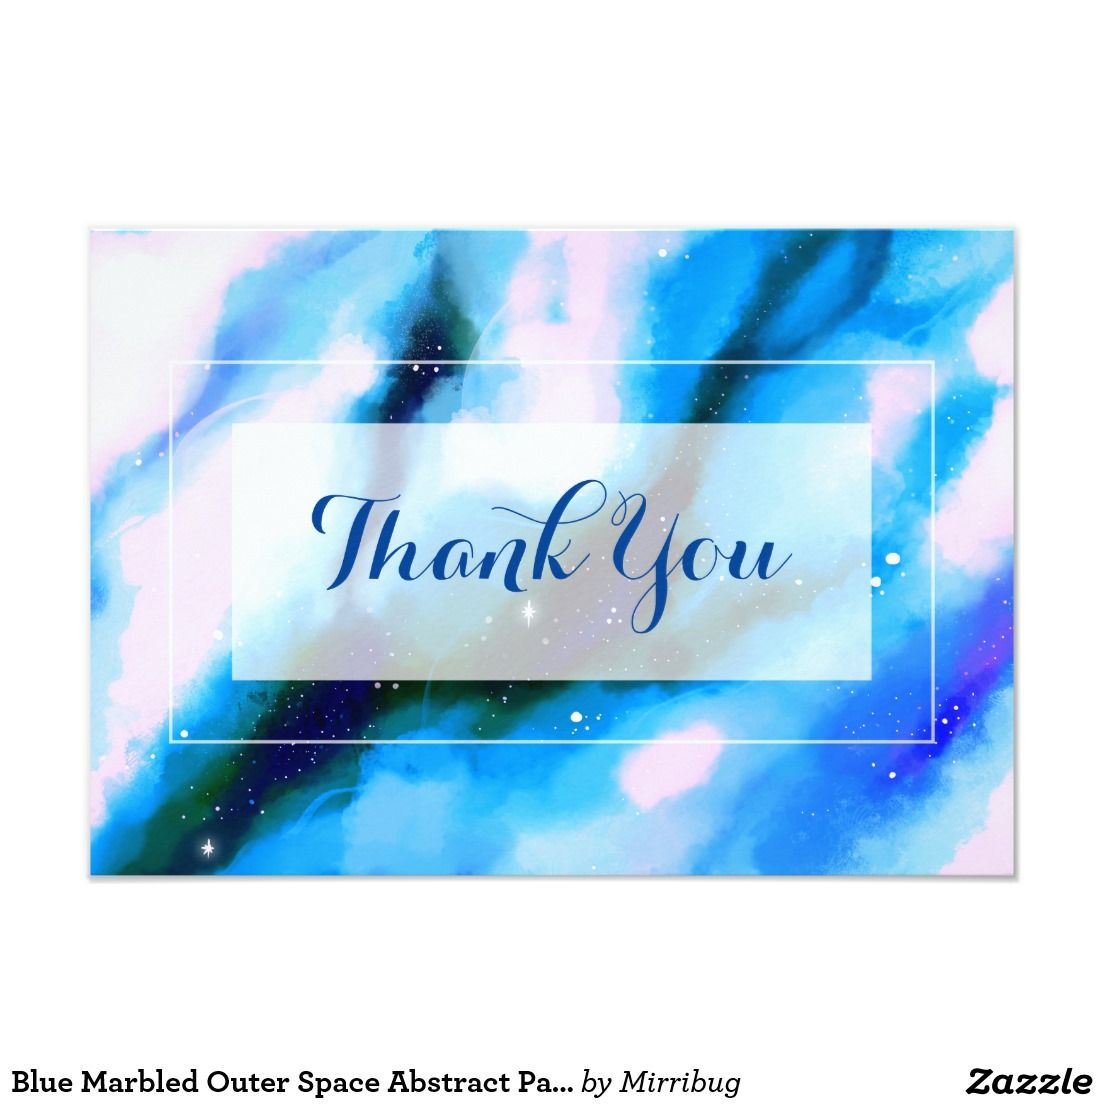 Blue Marbled Outer Space Abstract Party Thank You Card